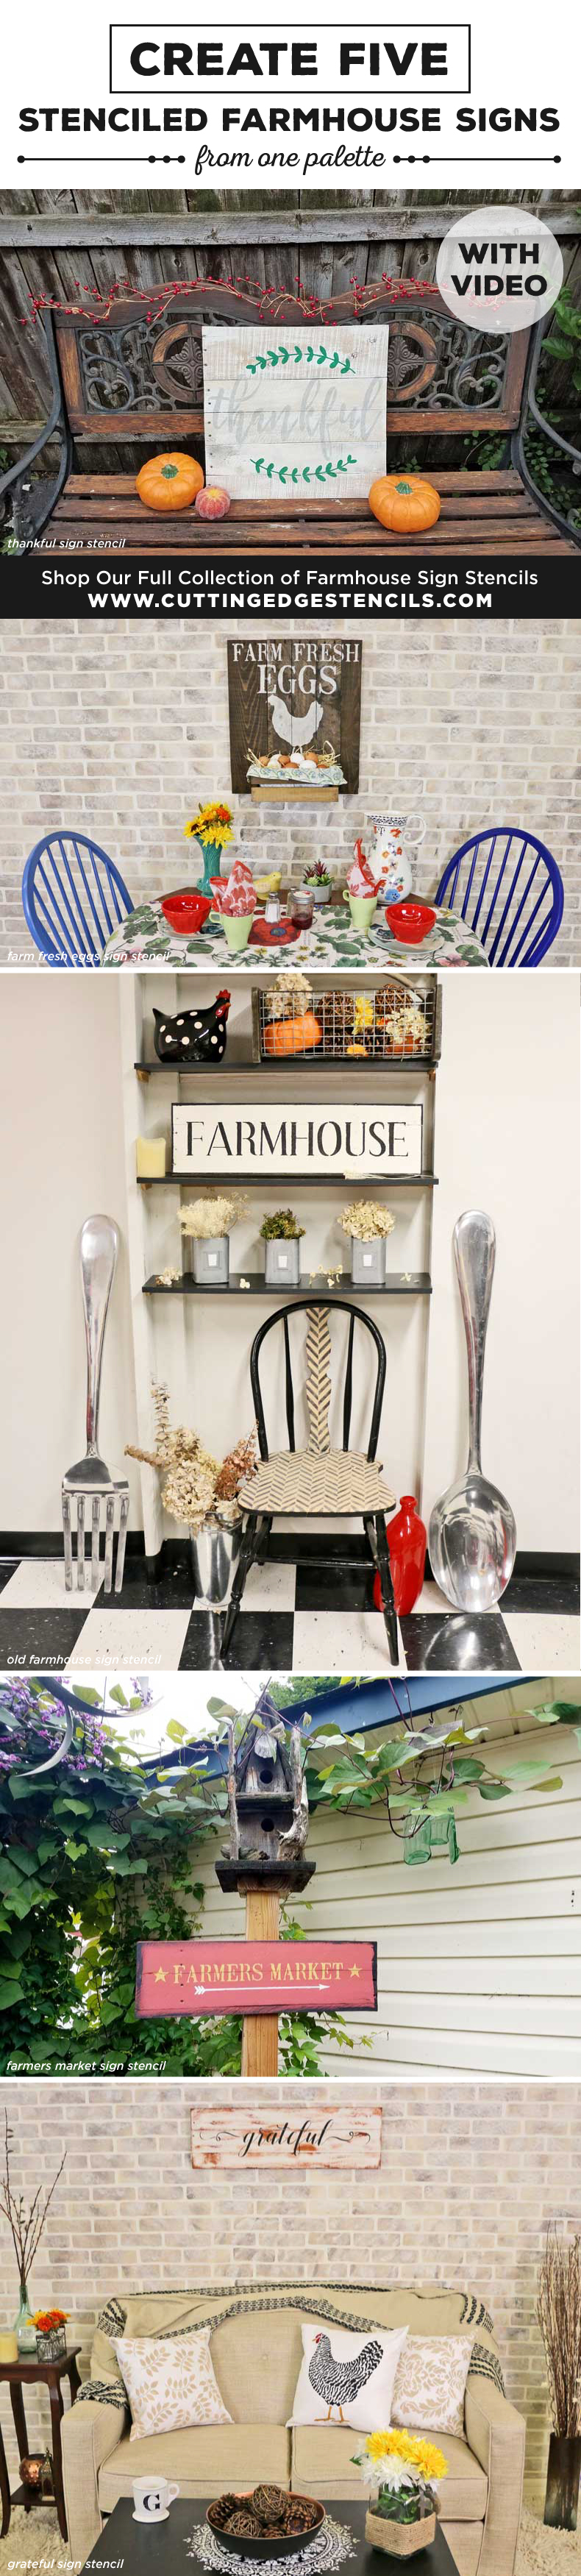 stenciled-farmhouse-signs-collage